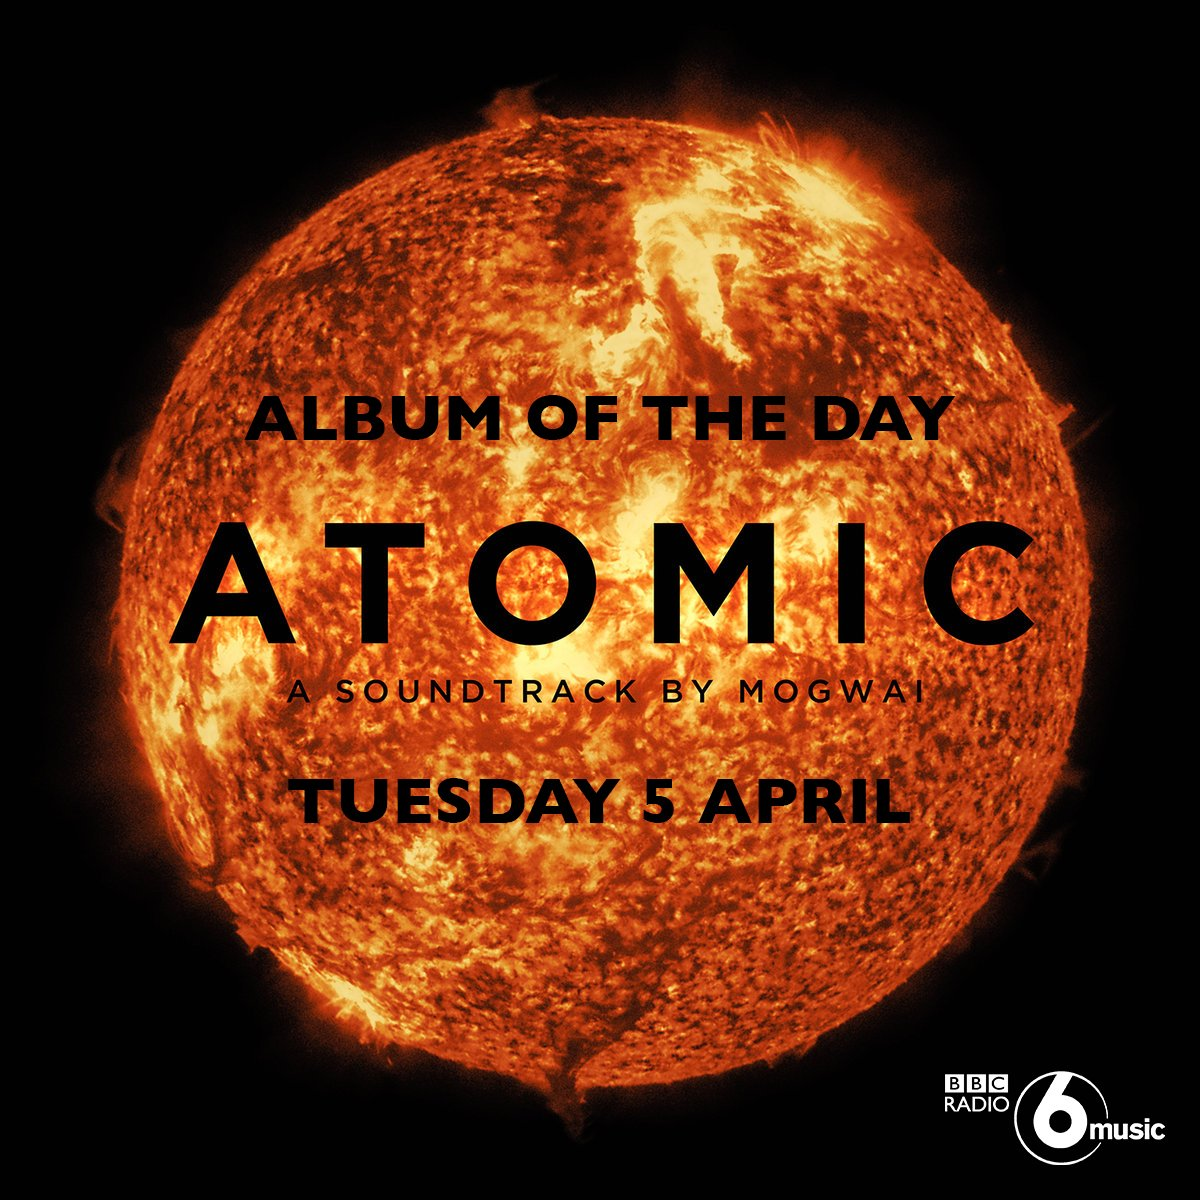 The awesome 'Atomic' is AotD - @mogwaiband being the only band that could give the nuclear age a fitting soundtrack https://t.co/DTg31vXmmD